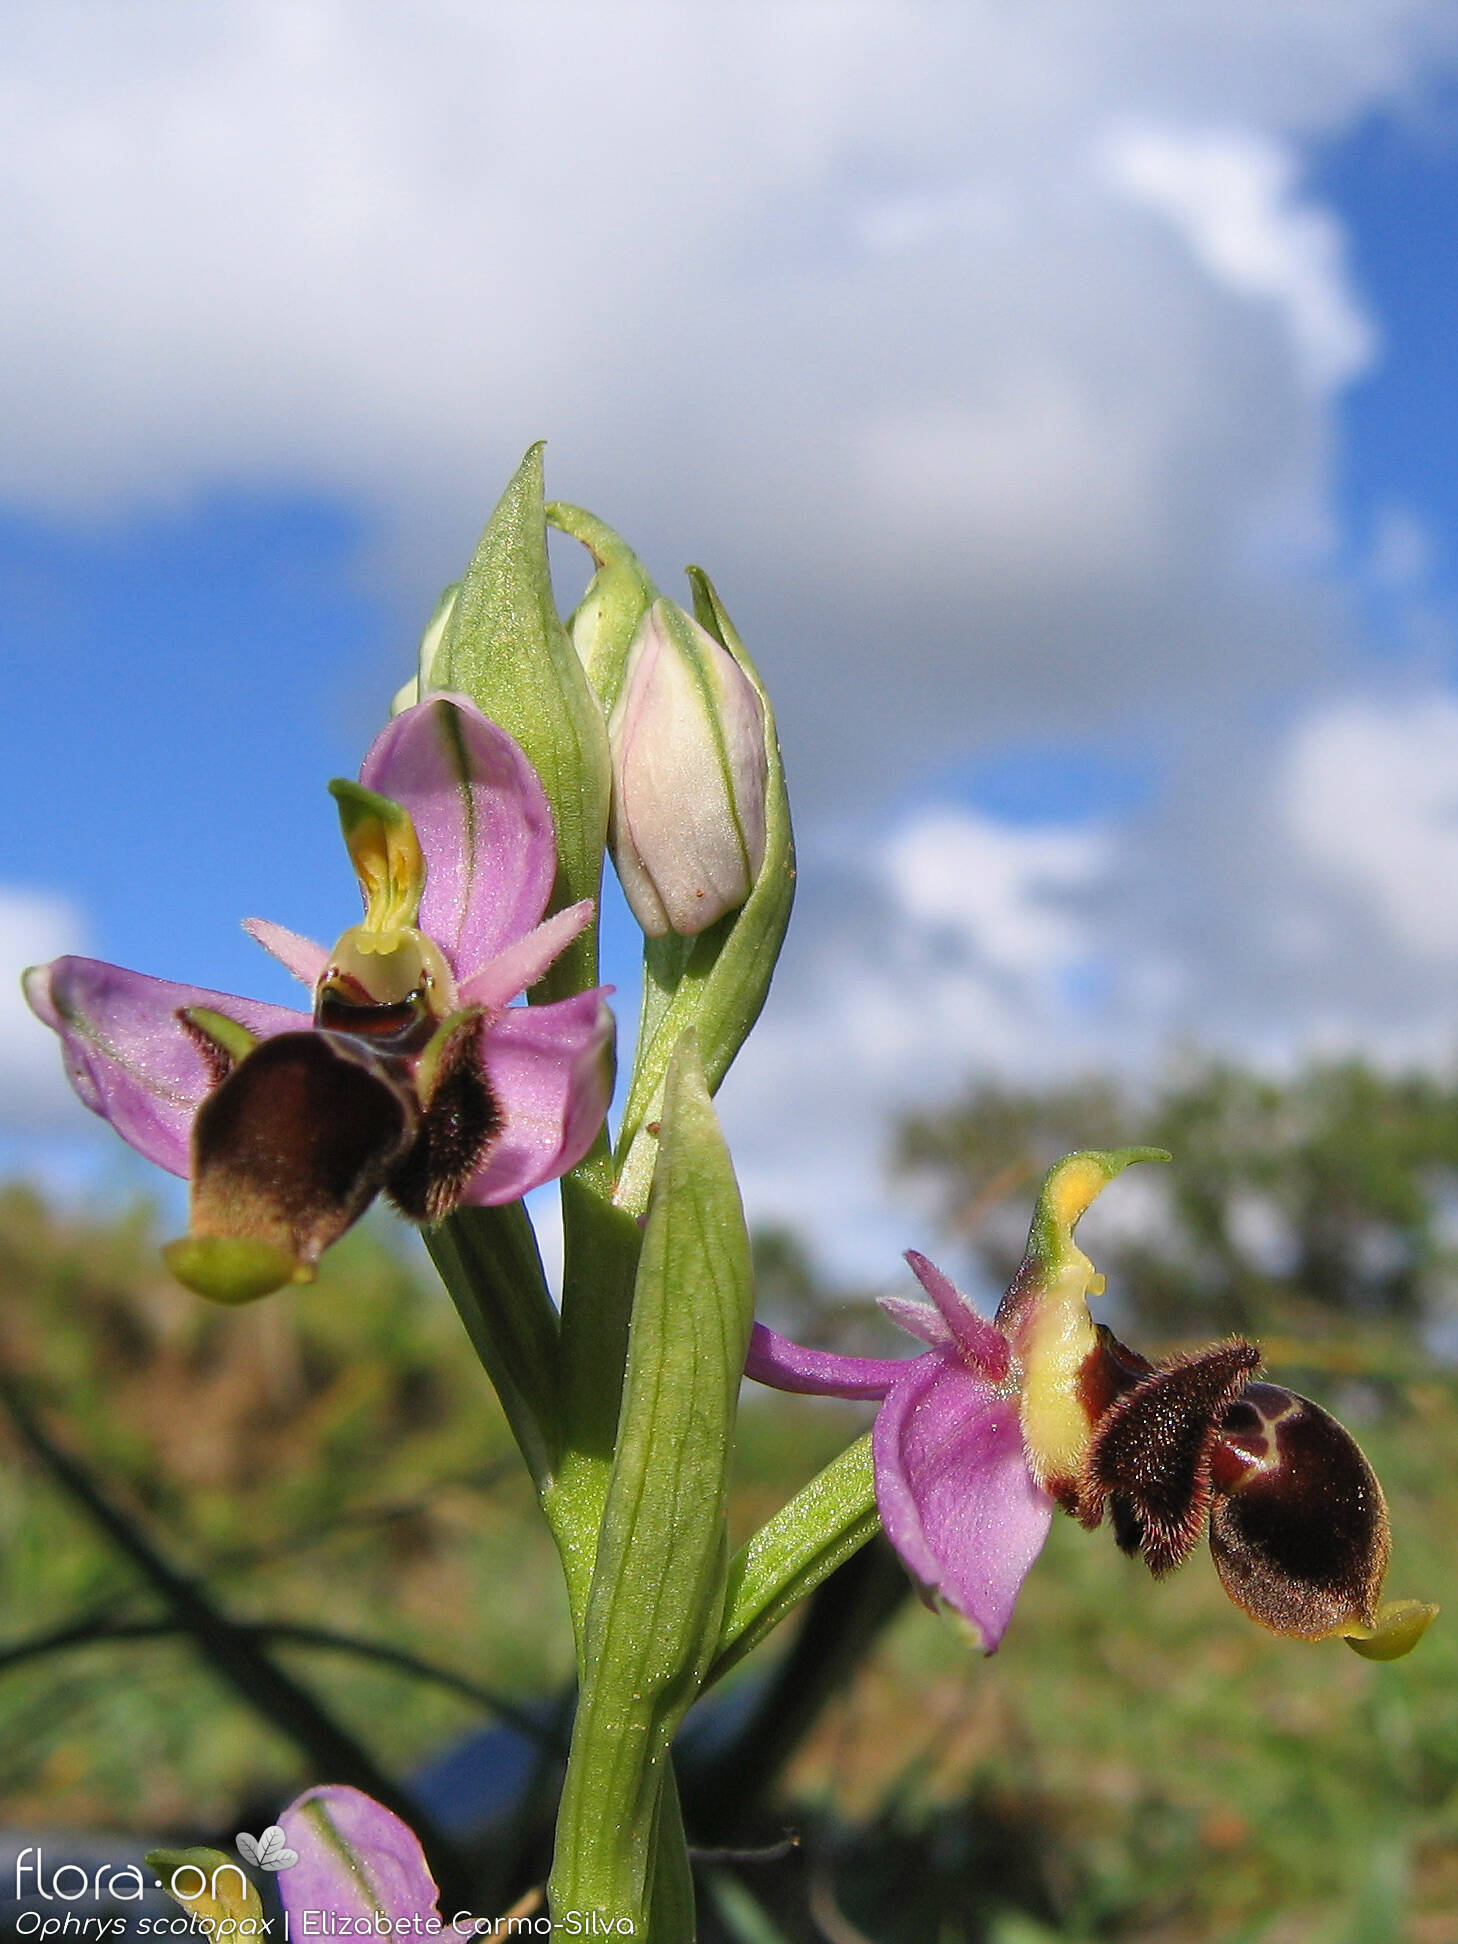 Ophrys scolopax - Flor (geral) | Elizabete Carmo-Silva; CC BY-NC 4.0